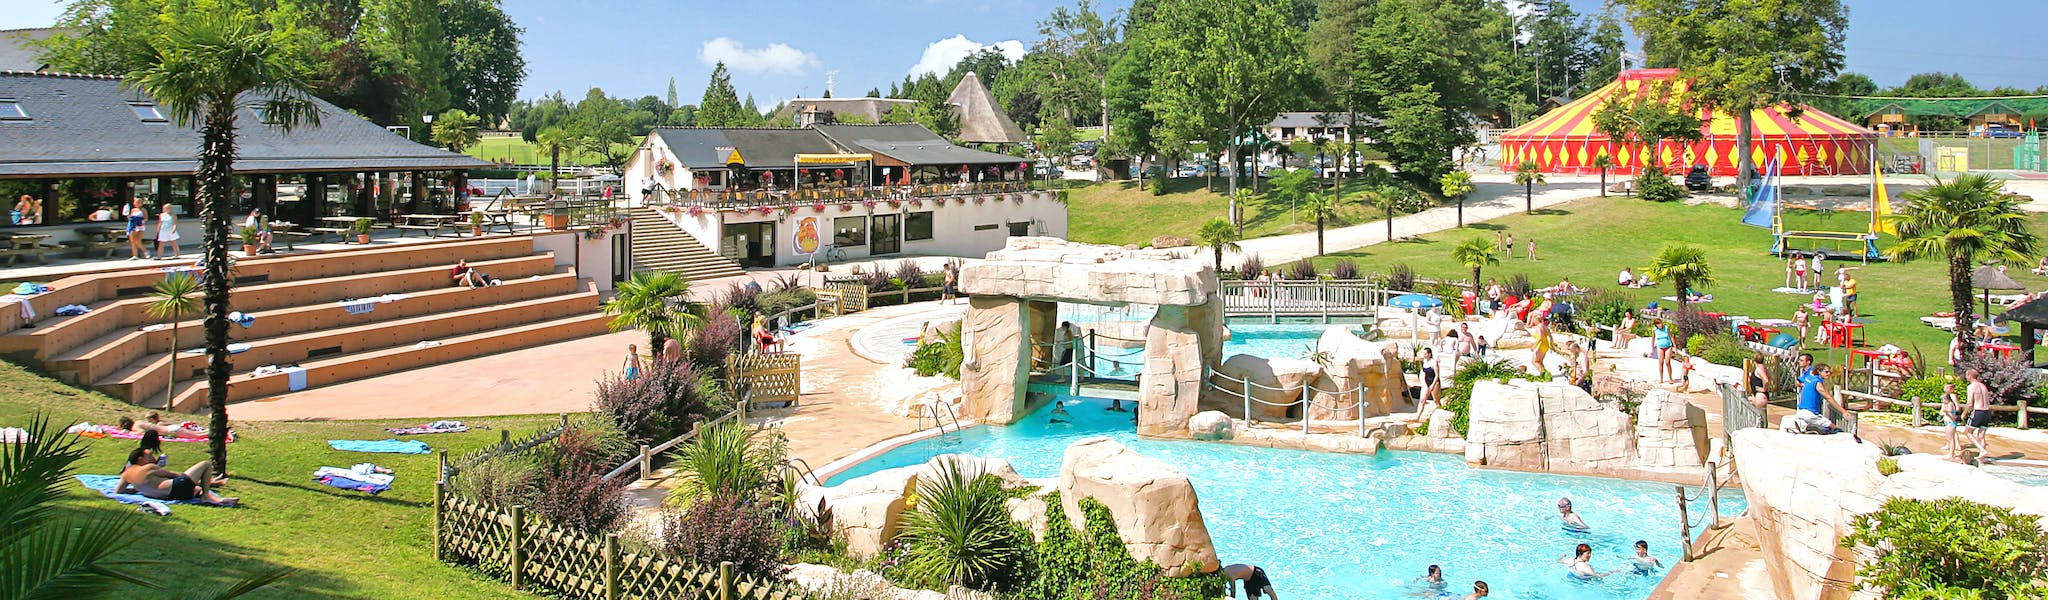 Camping Domaine des Ormes zwempa